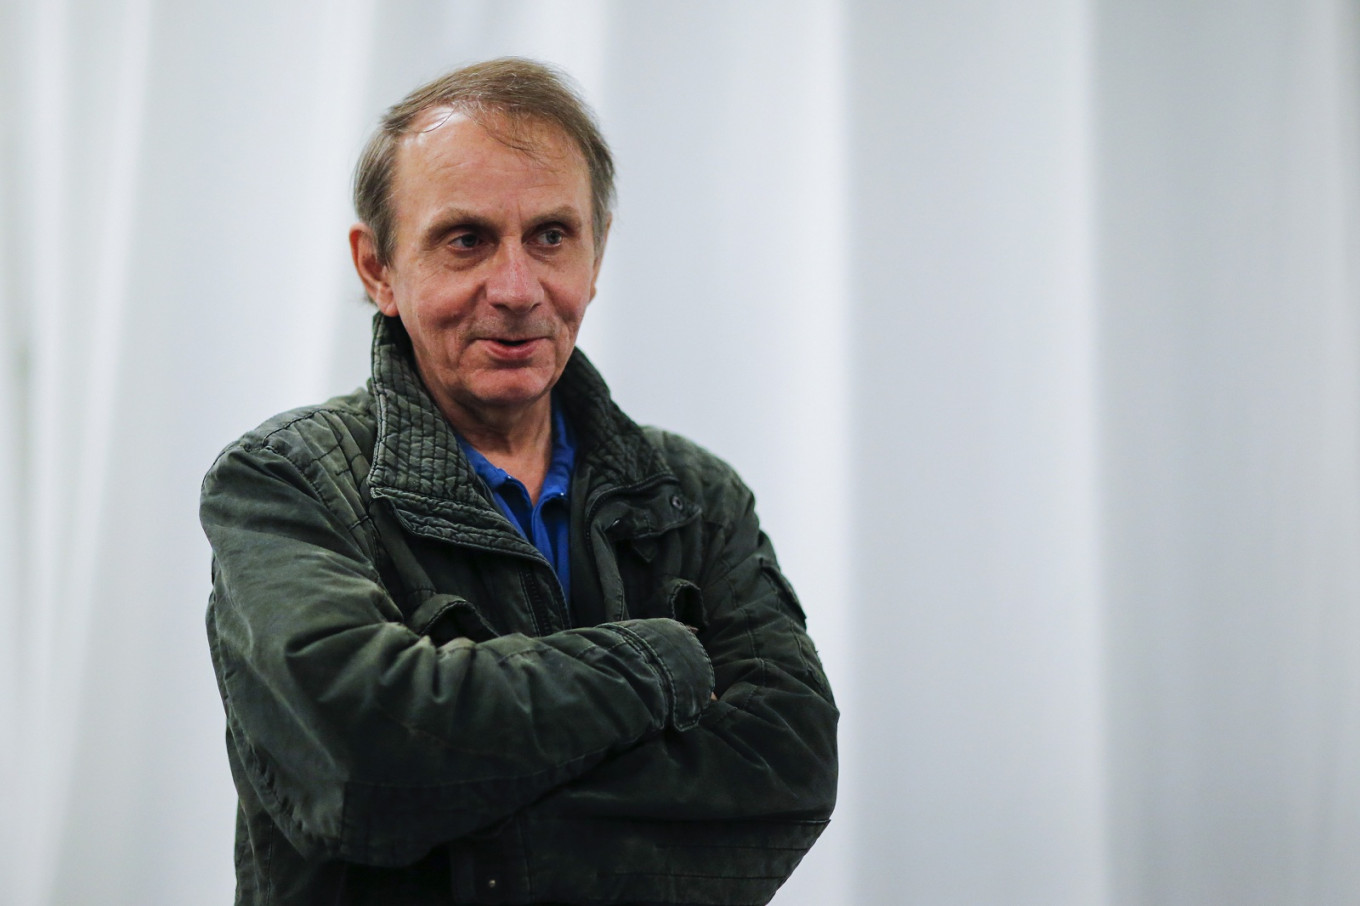 Houellebecq hails writer who says migrants are 'rapists and thieves'